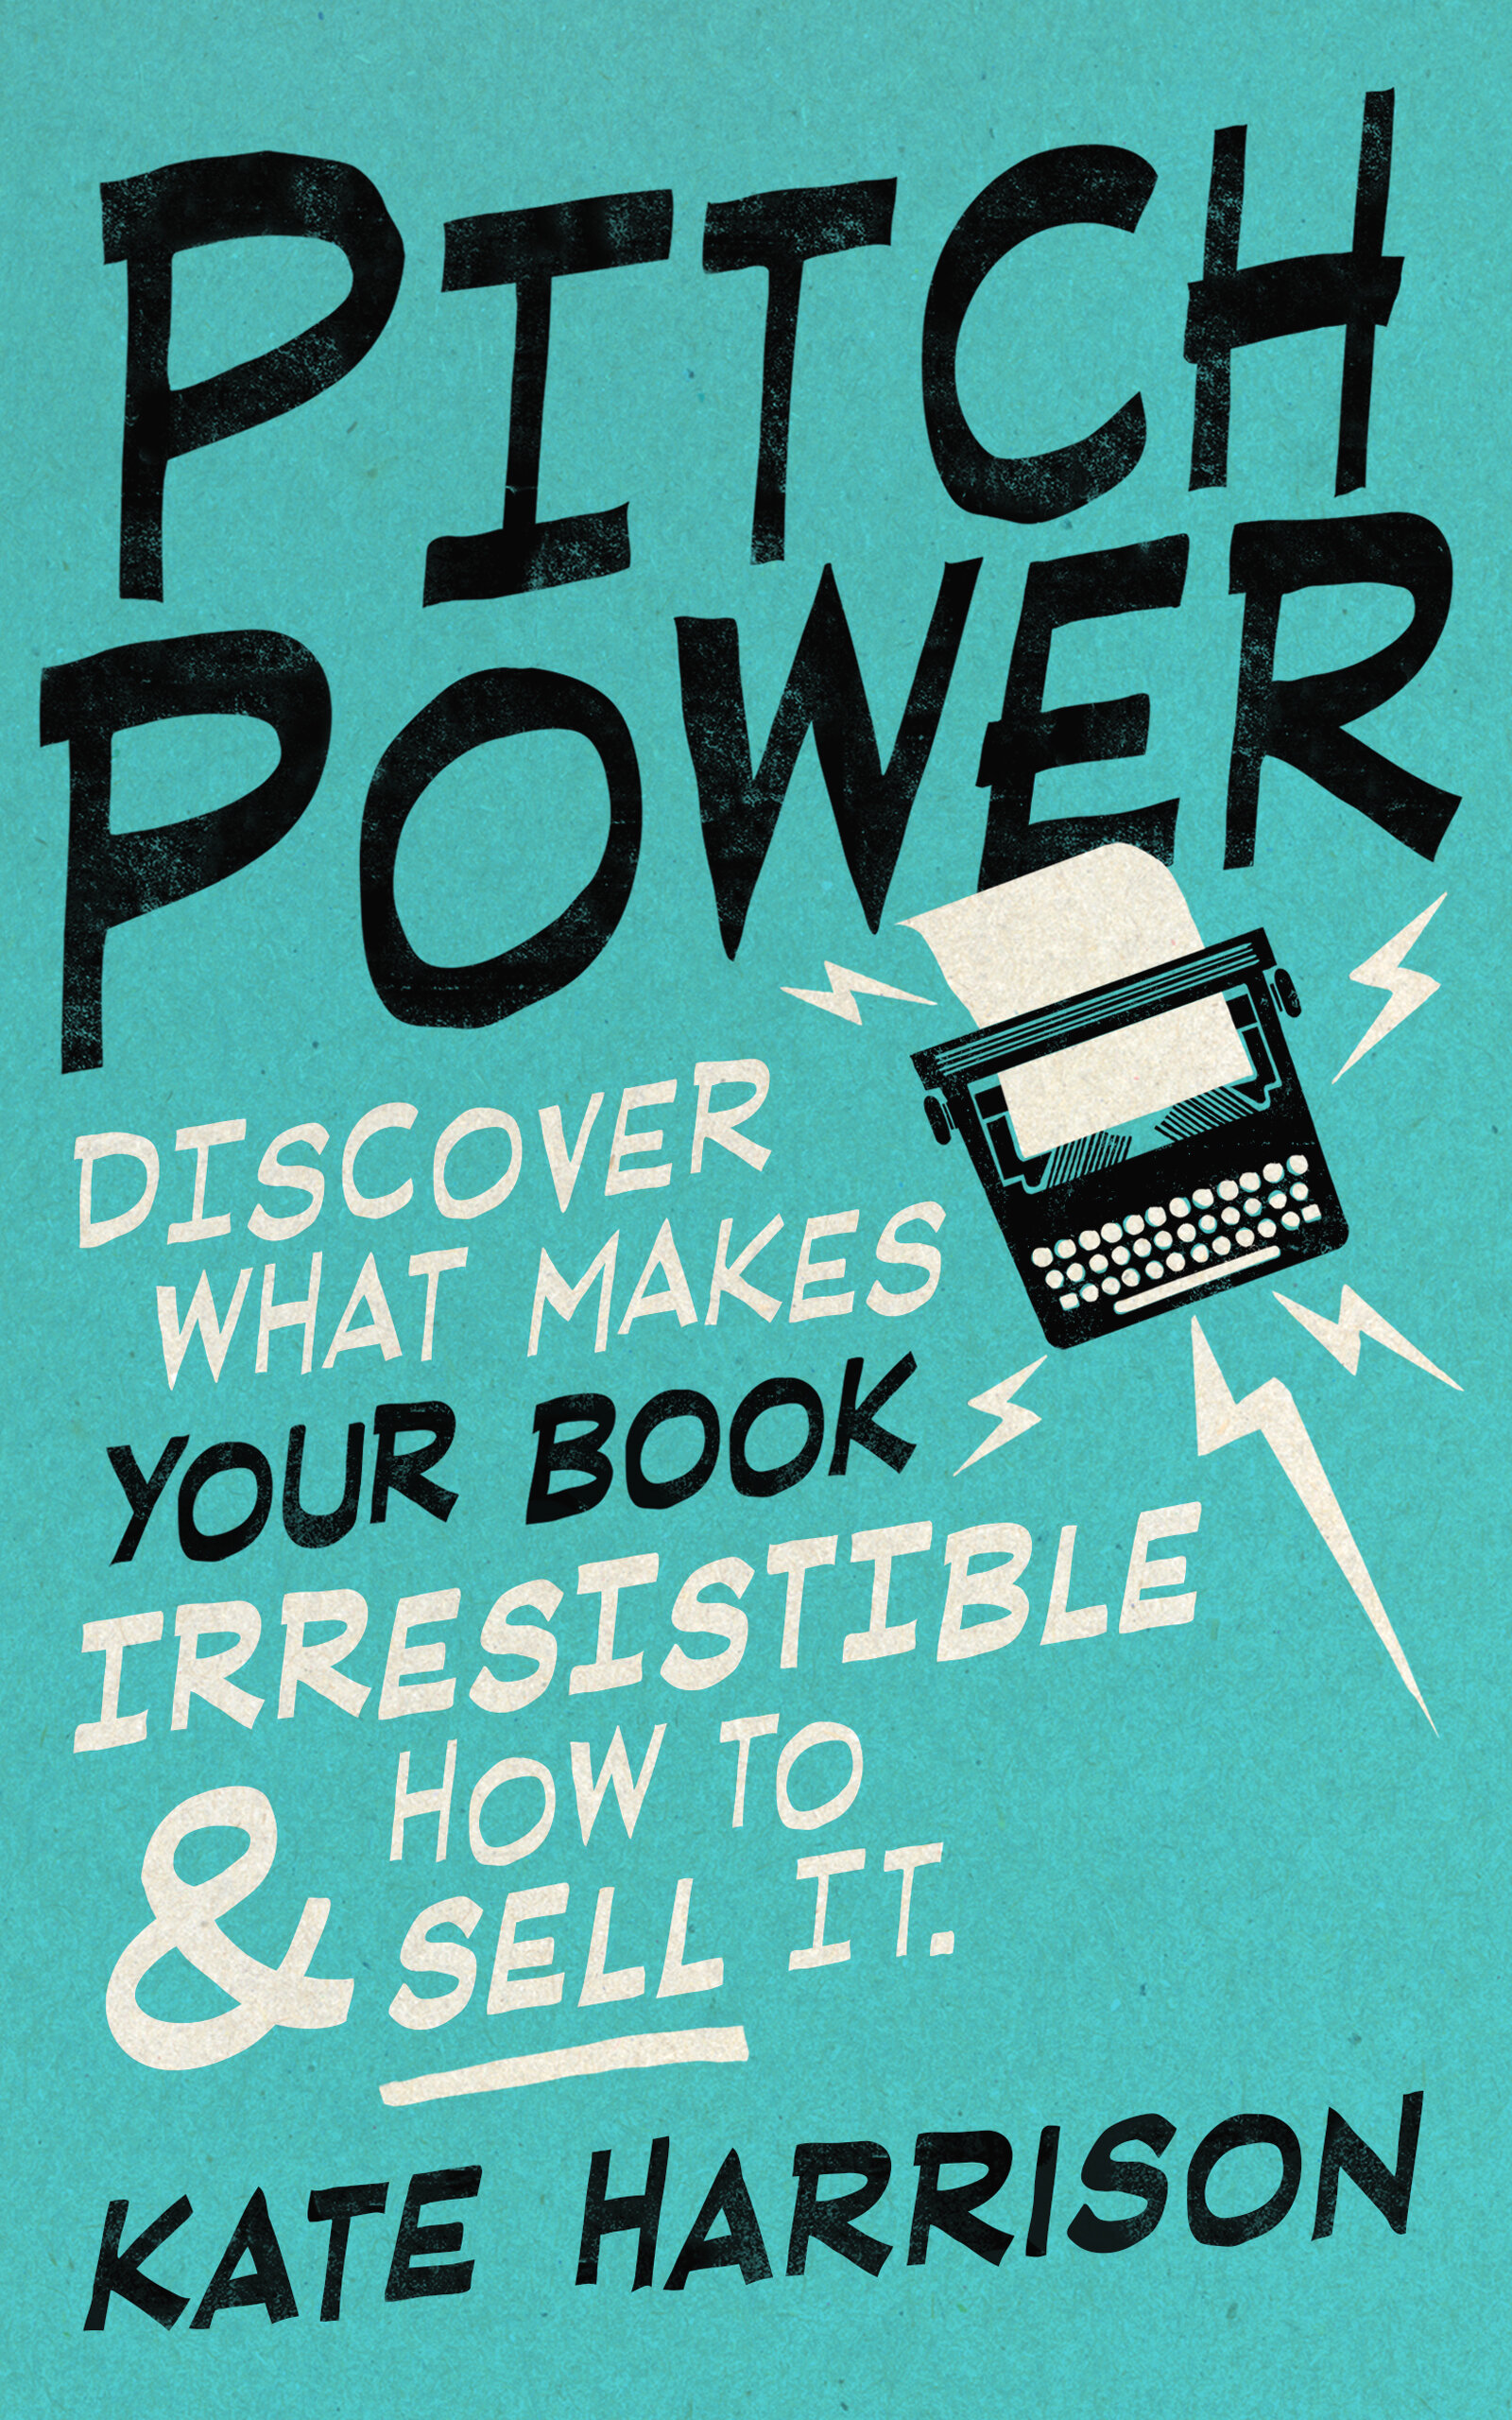 PitchPower_Cover_Amazon.jpg